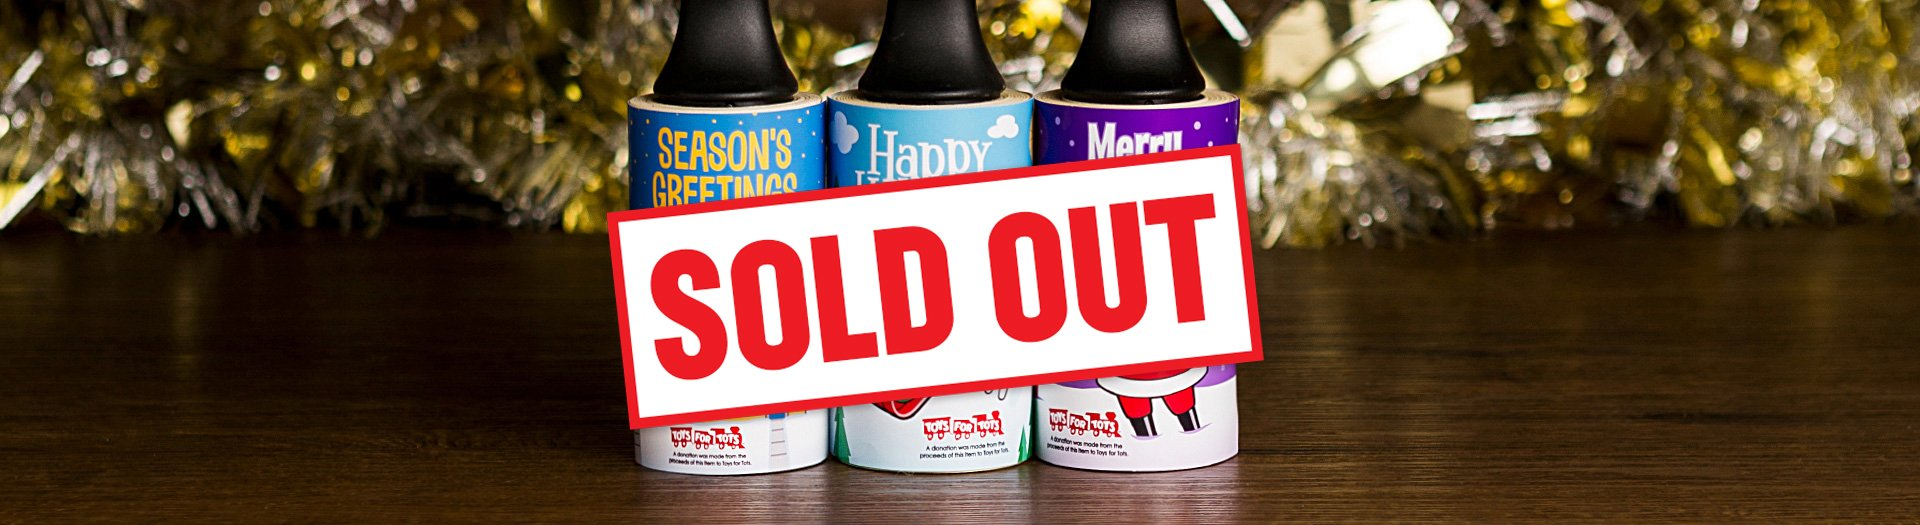 Cleaner's Supply 2019 Holiday Lint Removers Sold Out